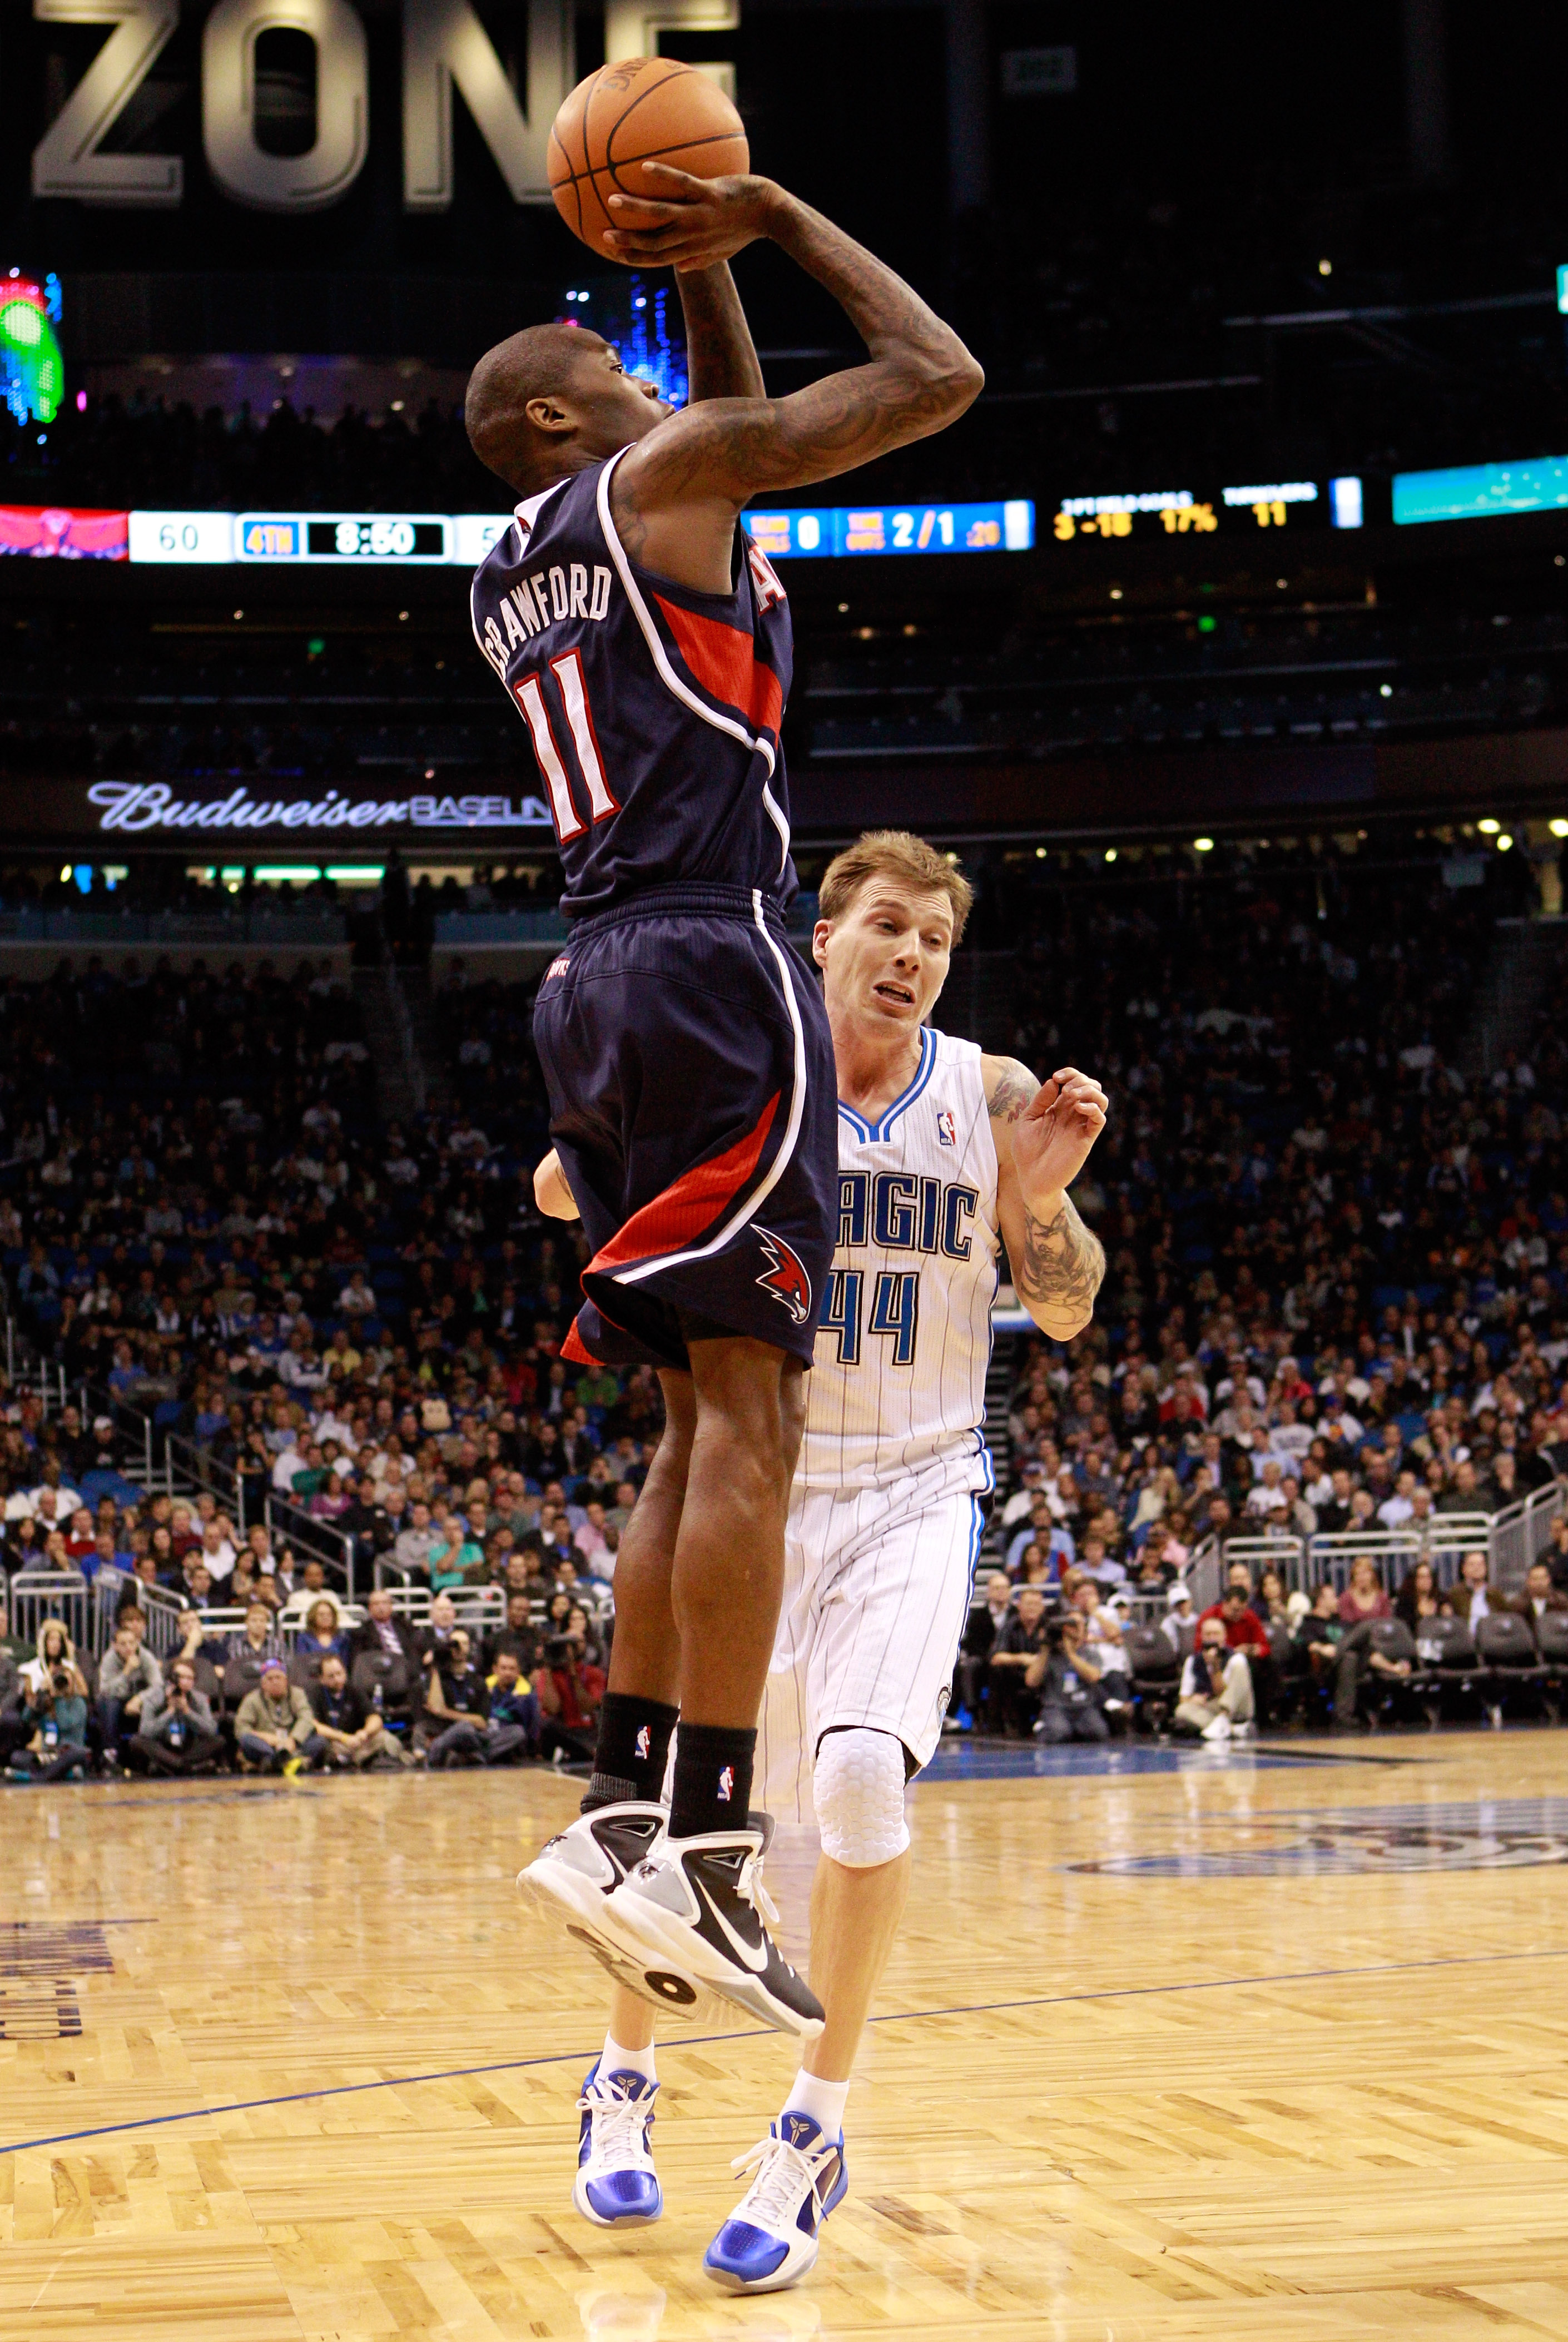 ORLANDO, FL - DECEMBER 06:  Jamal Crawford #11 of the Atlanta Hawks shoots over Jason Williams #44 of the Orlando Magic during the game at Amway Arena on December 6, 2010 in Orlando, Florida. NOTE TO USER: User expressly acknowledges and agrees that, by d